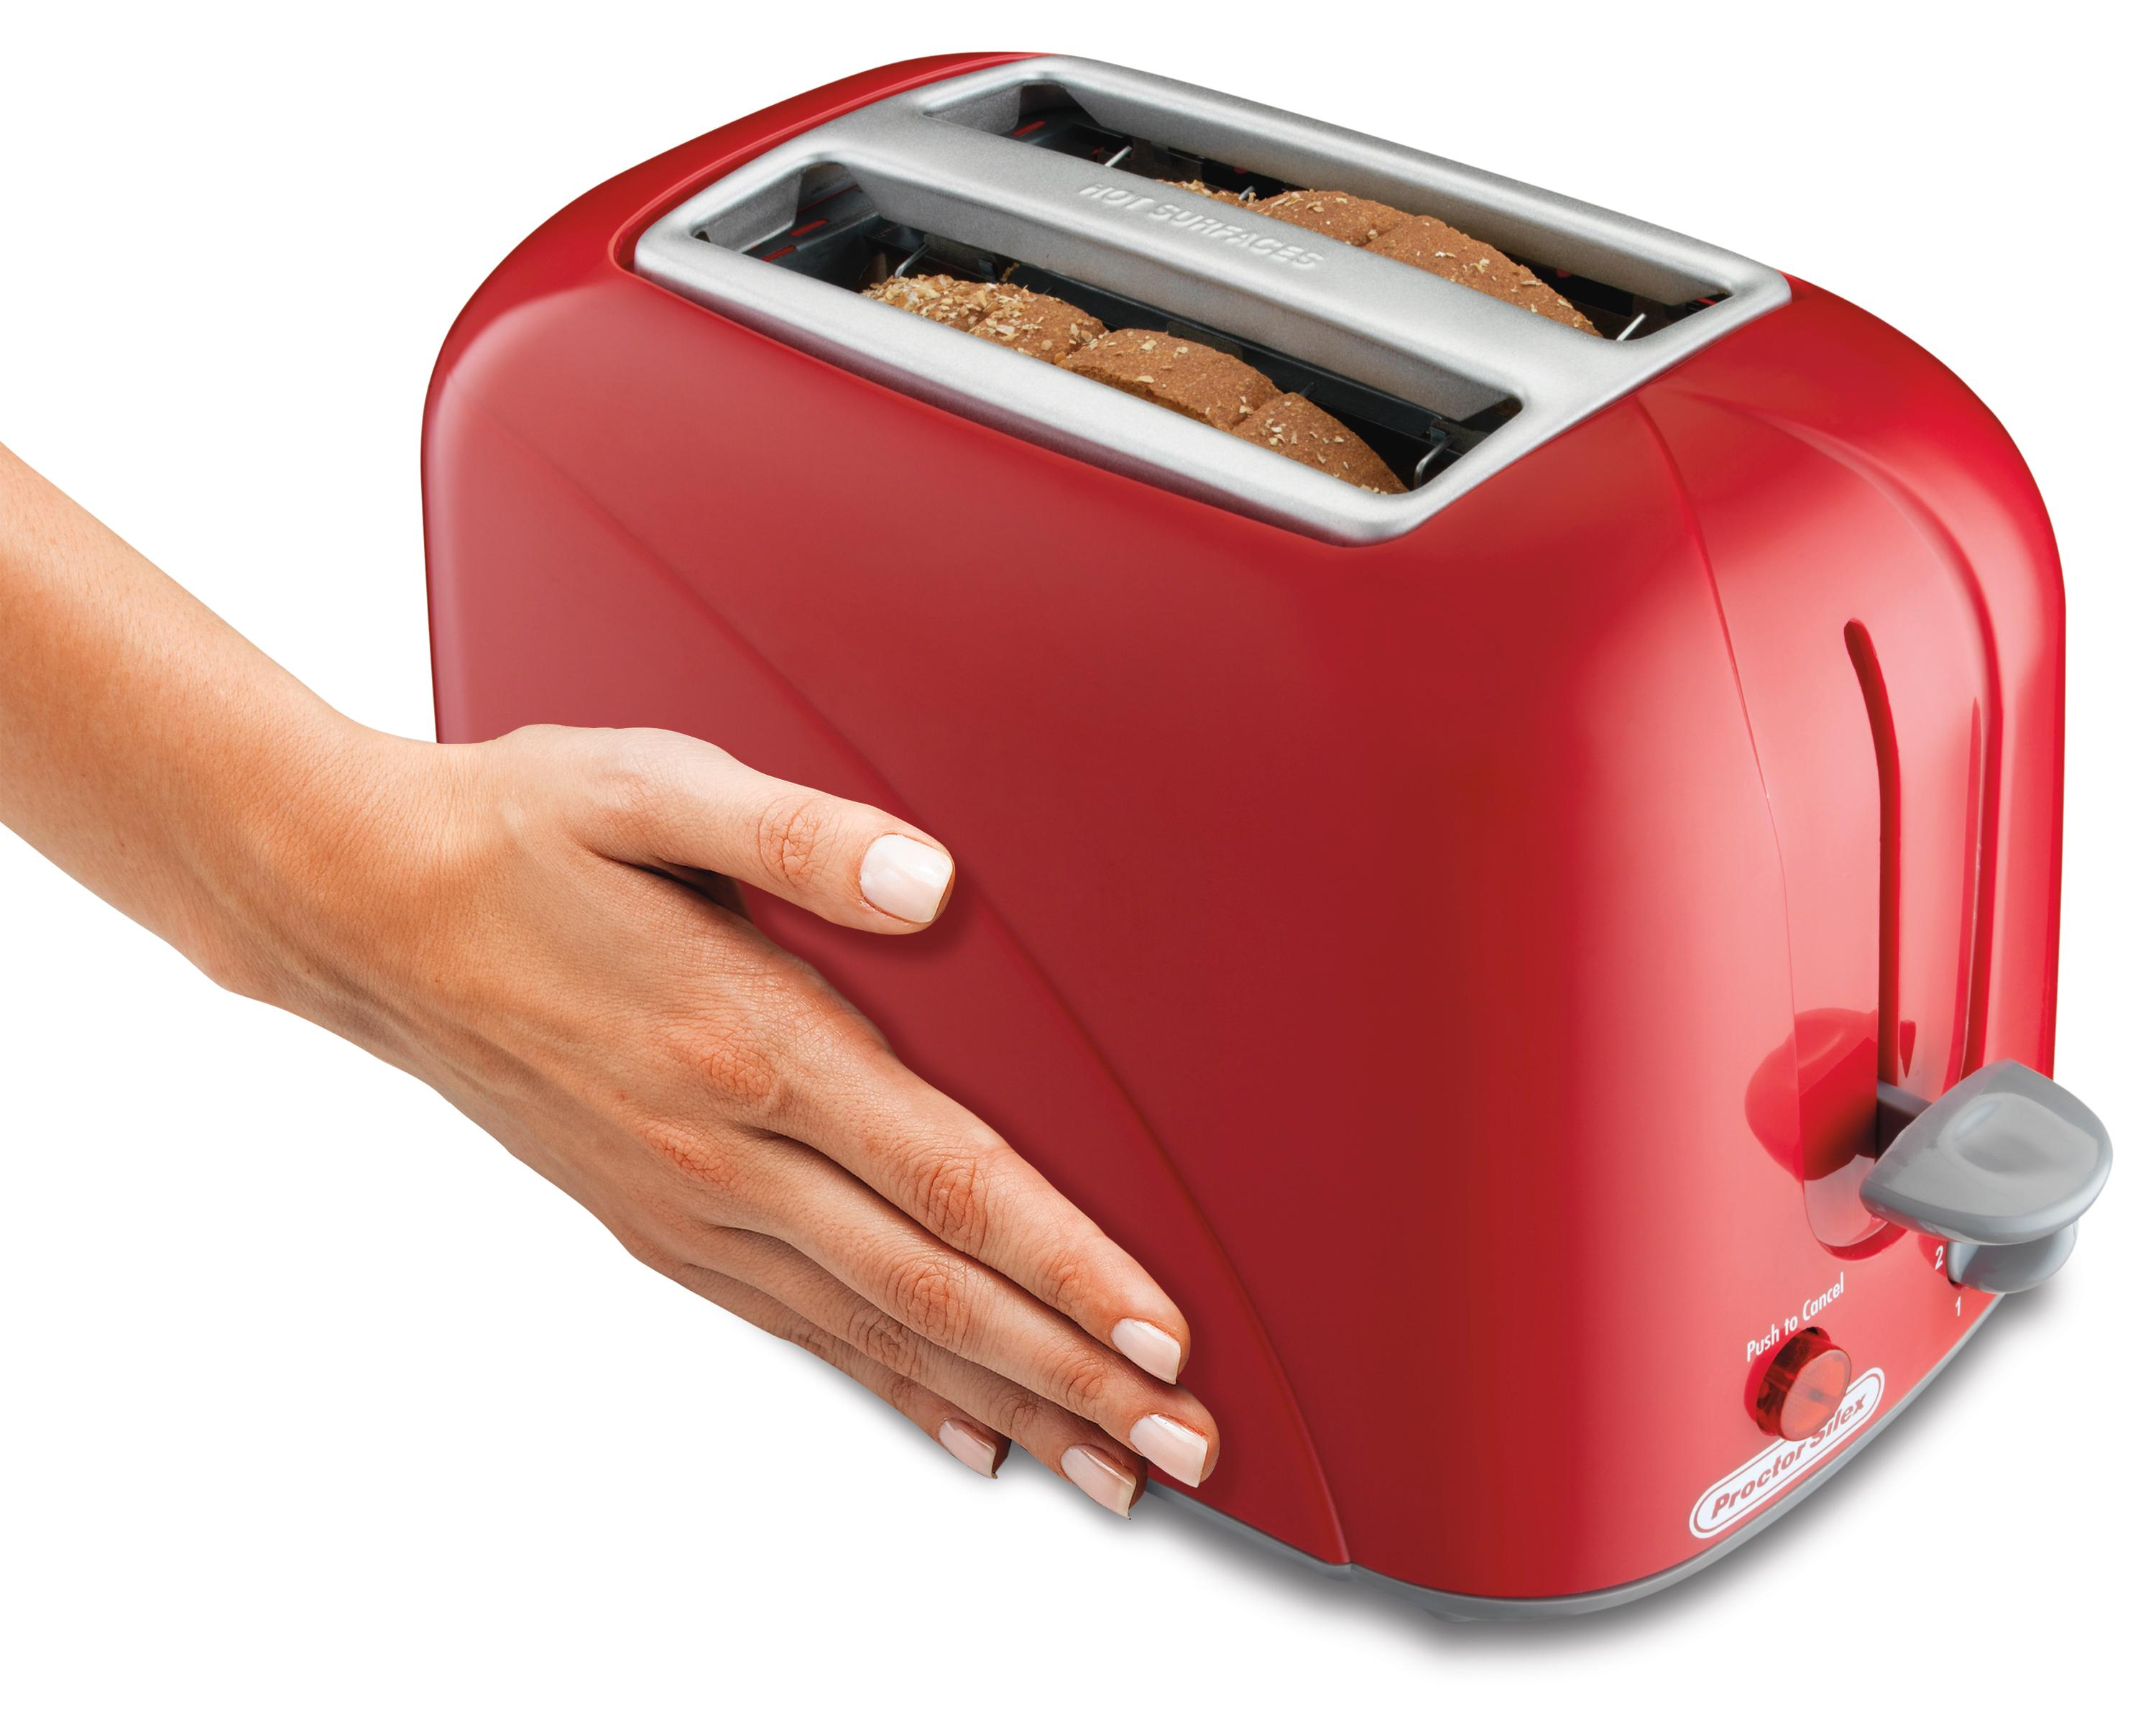 Proctor silex 22204 2 slice toaster red - Cool touch exterior convection toaster oven ...